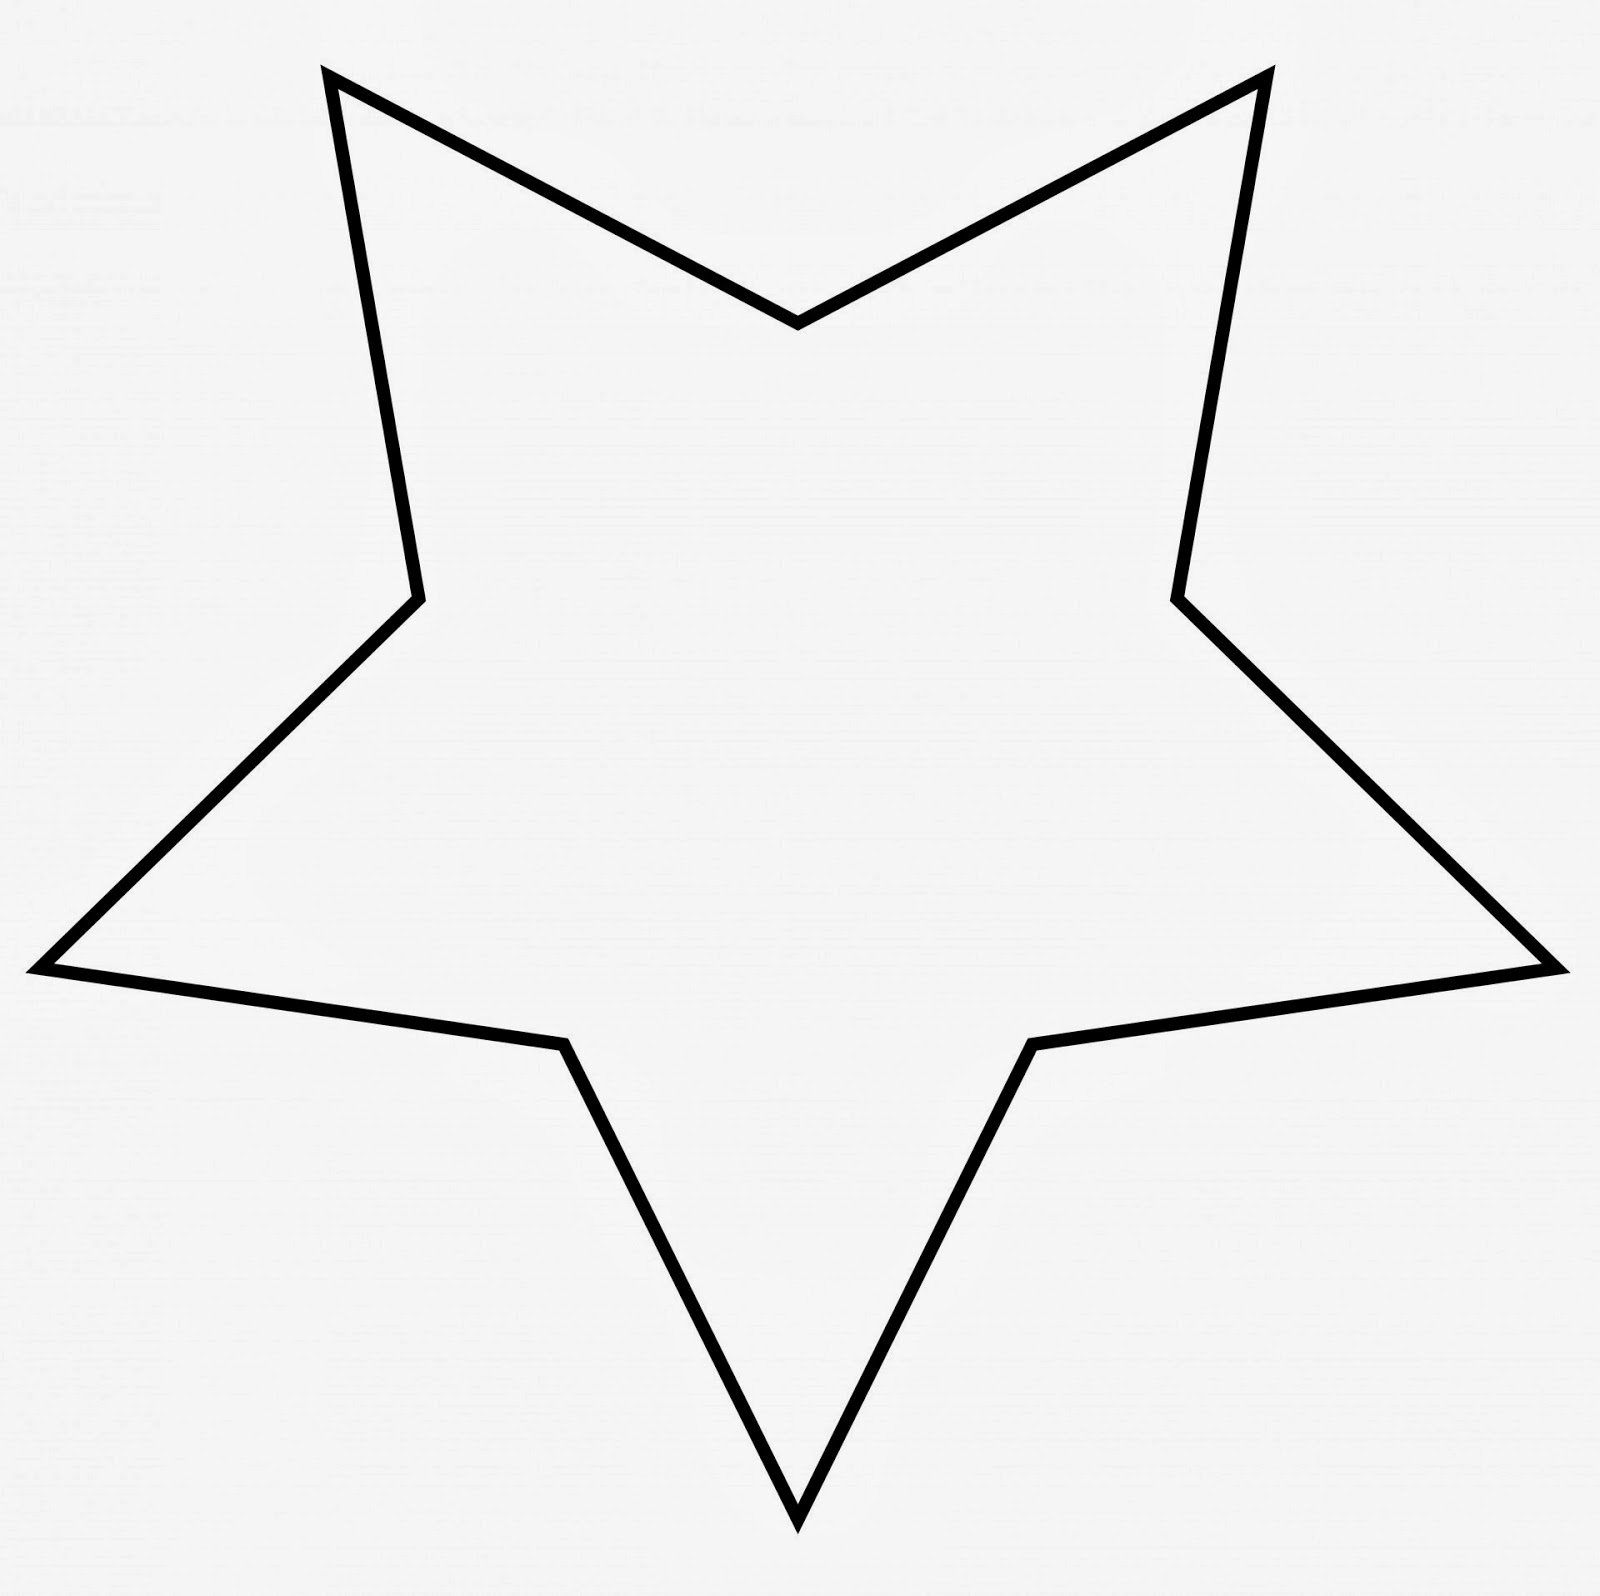 Star clip art outline clipart panda free clipart images for Star template free